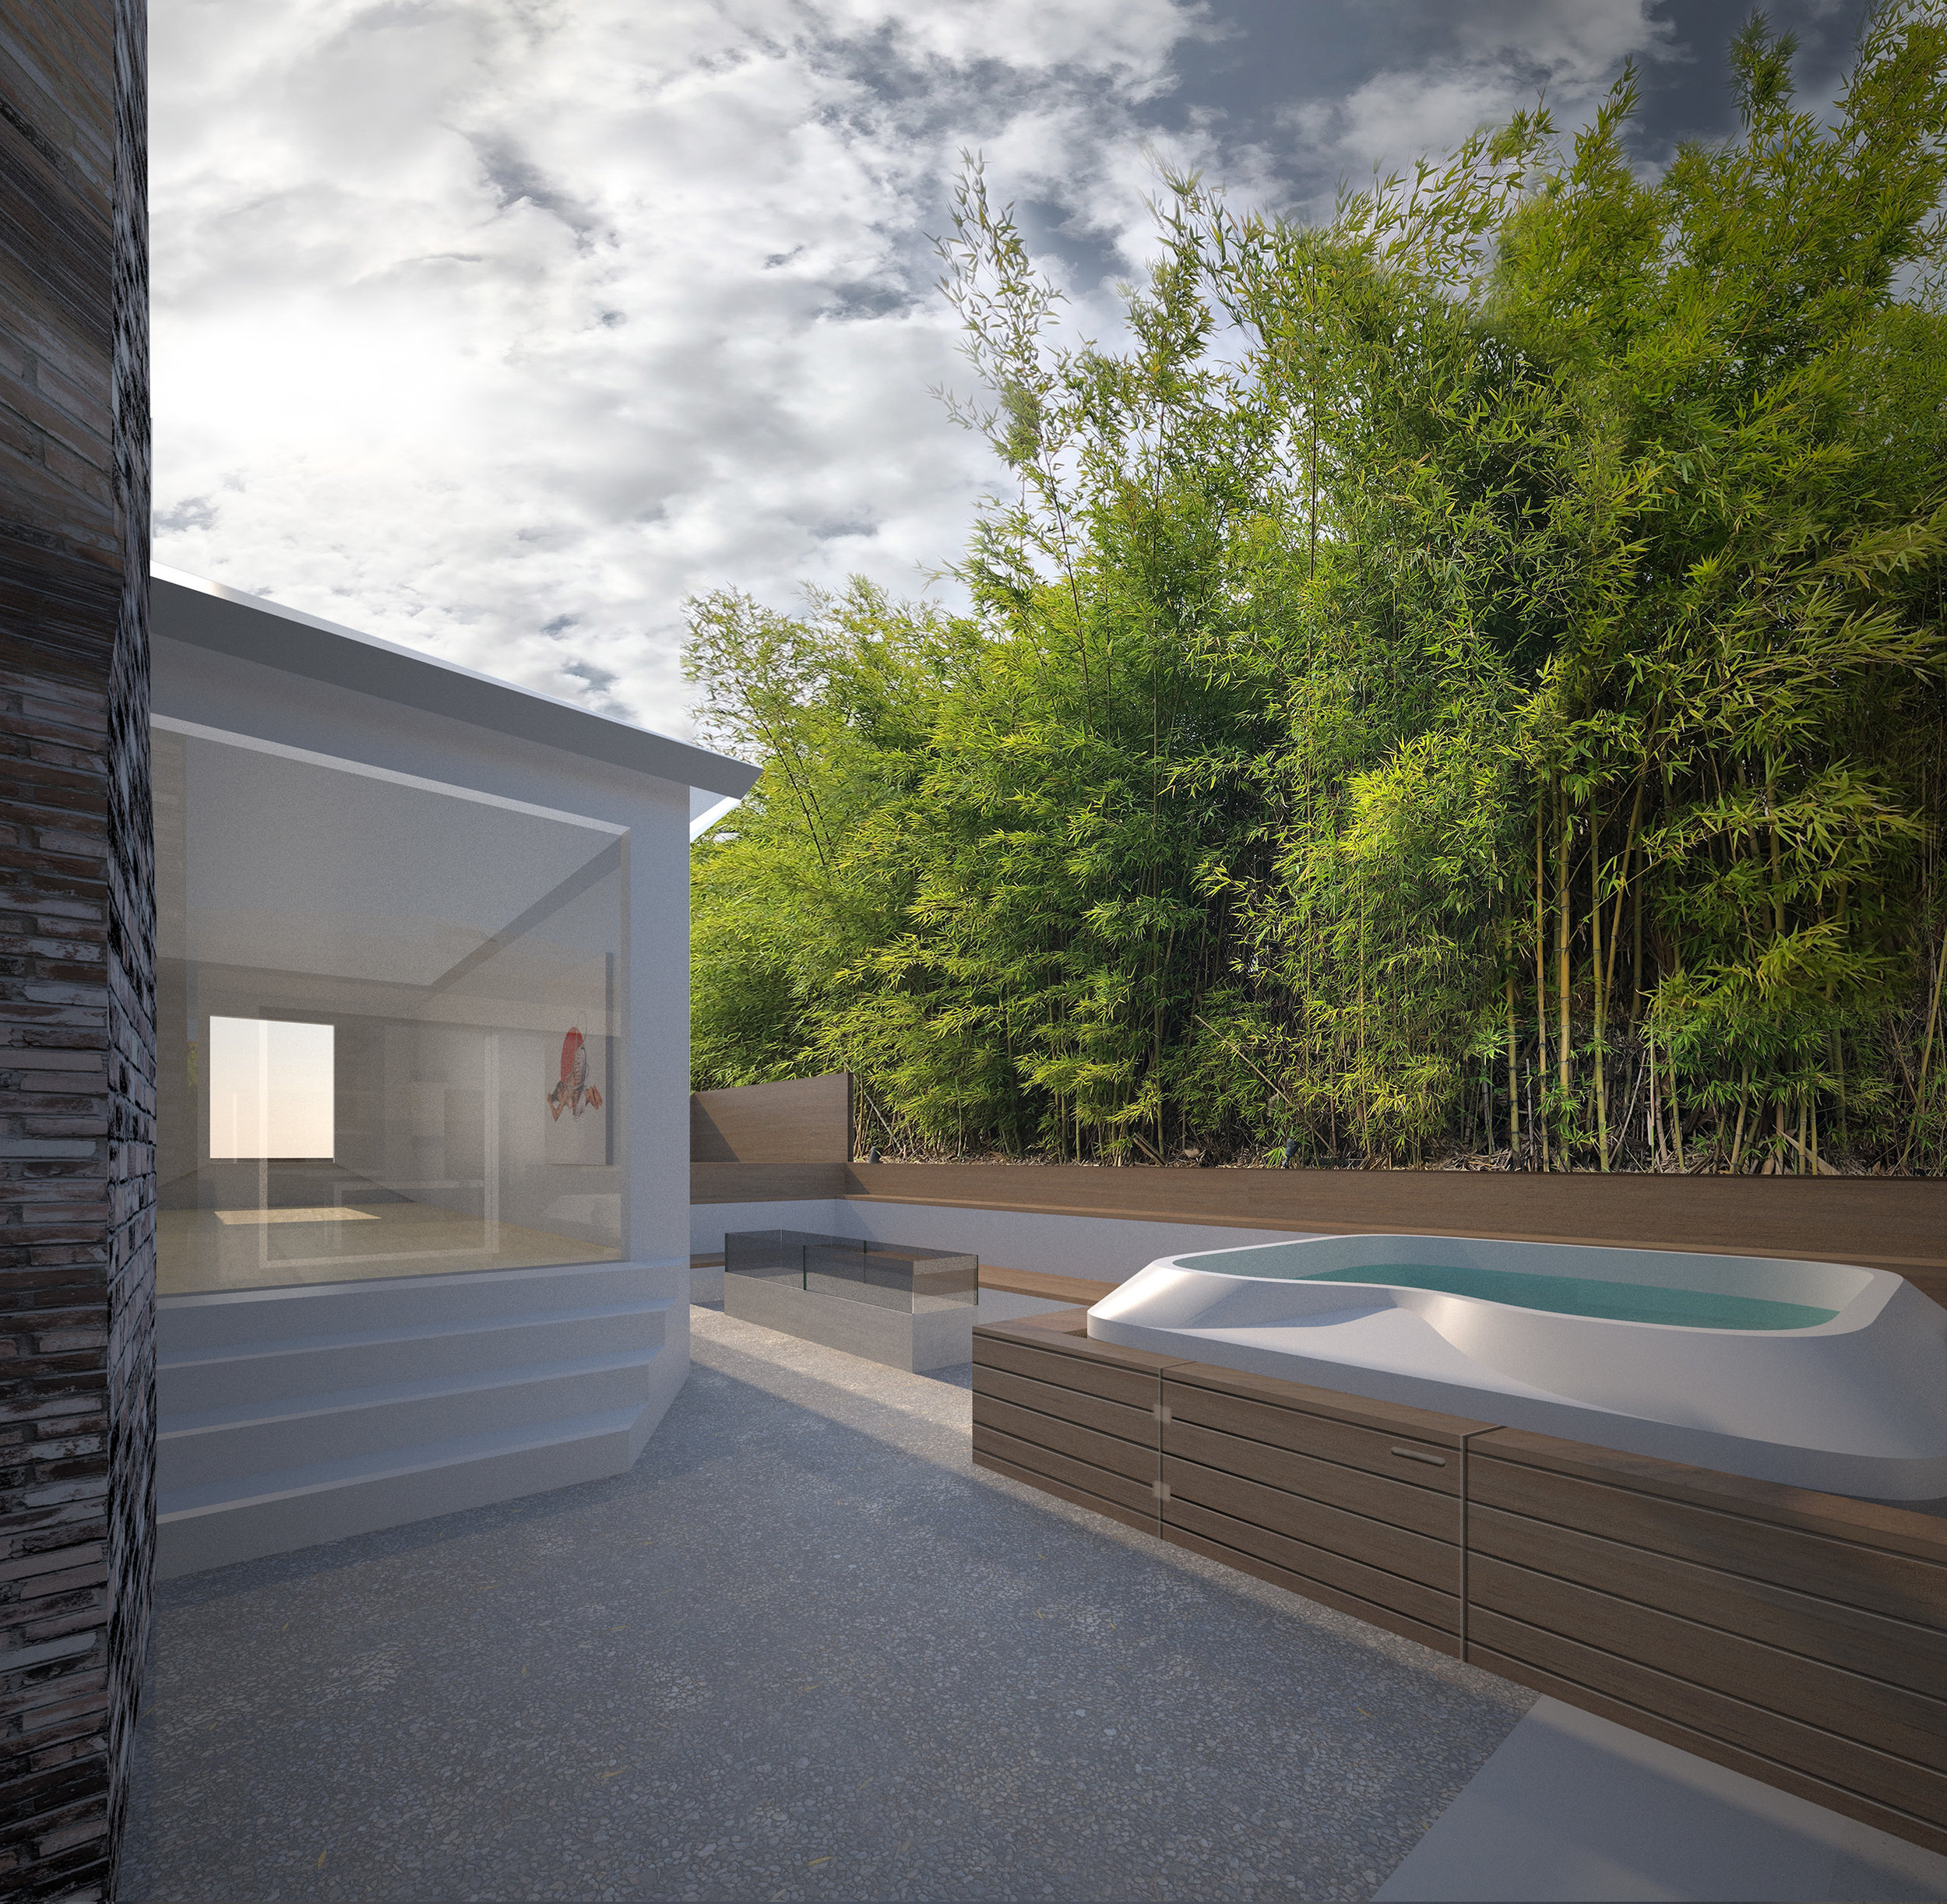 180419_Jacuzzi West View Collage.jpg